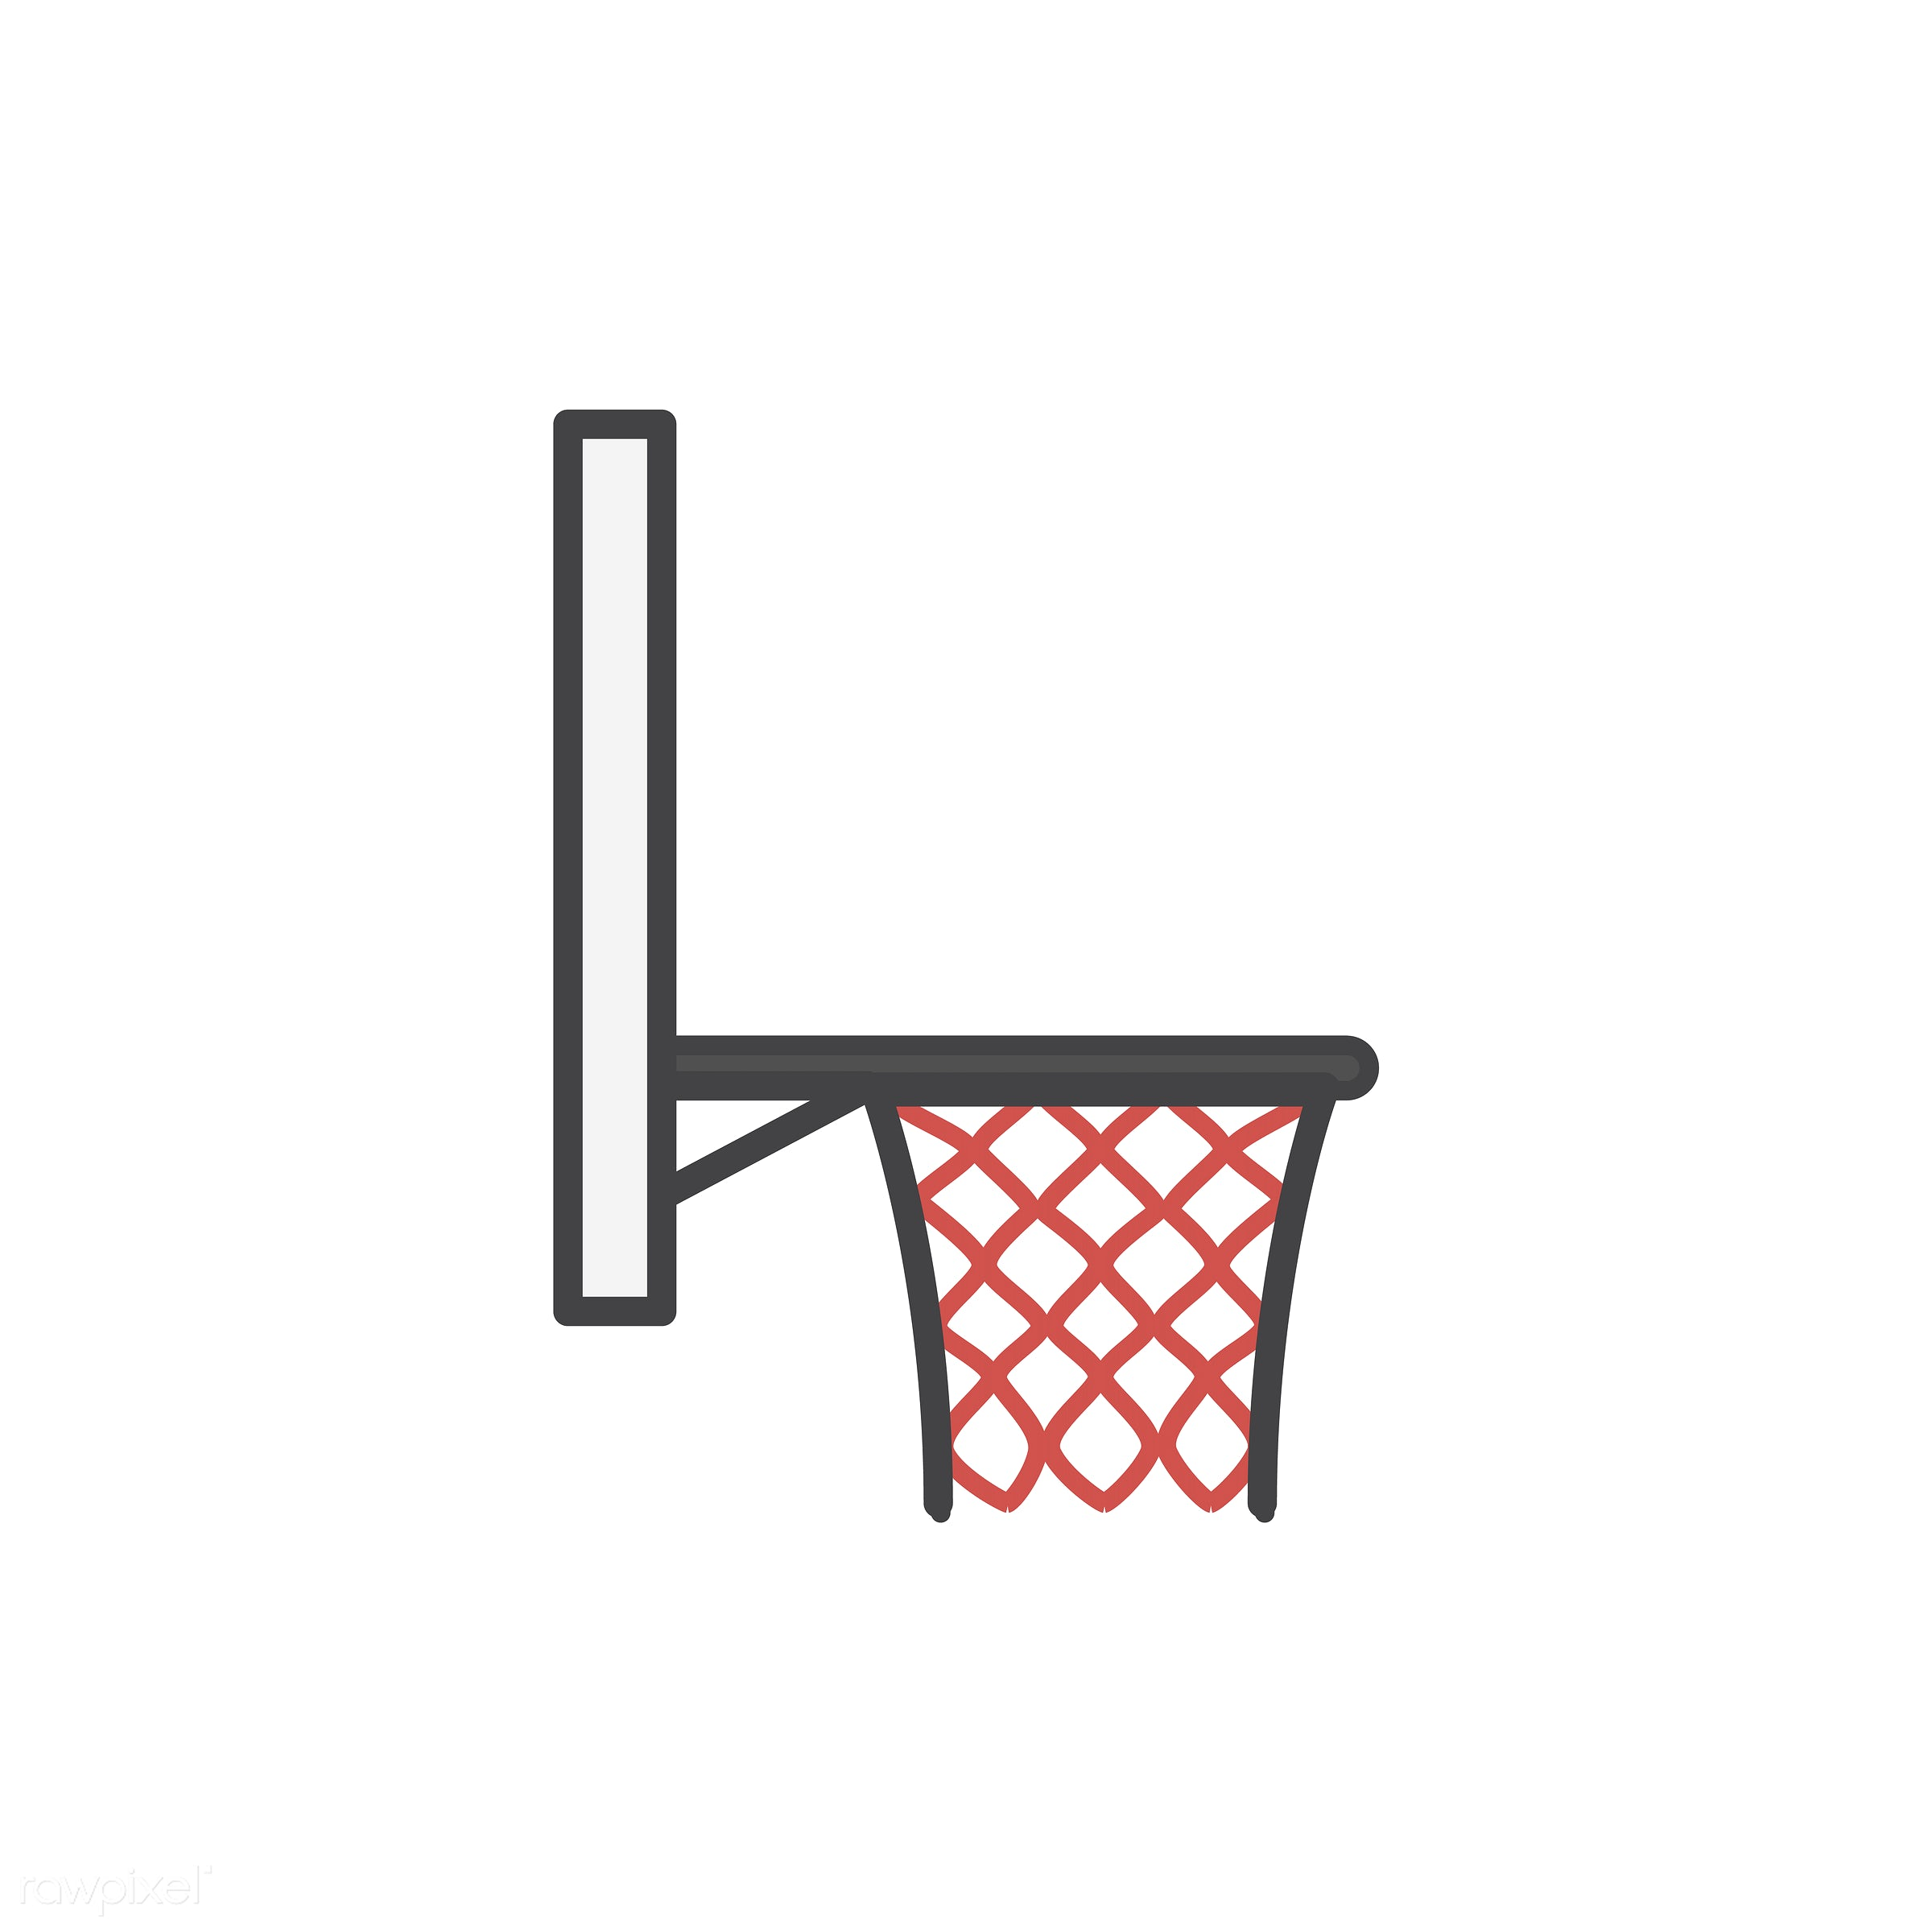 Simple basketball hoop icon vector - score, abode, adults, basketball, comfort, cozy, dwelling, home, homely, house,...